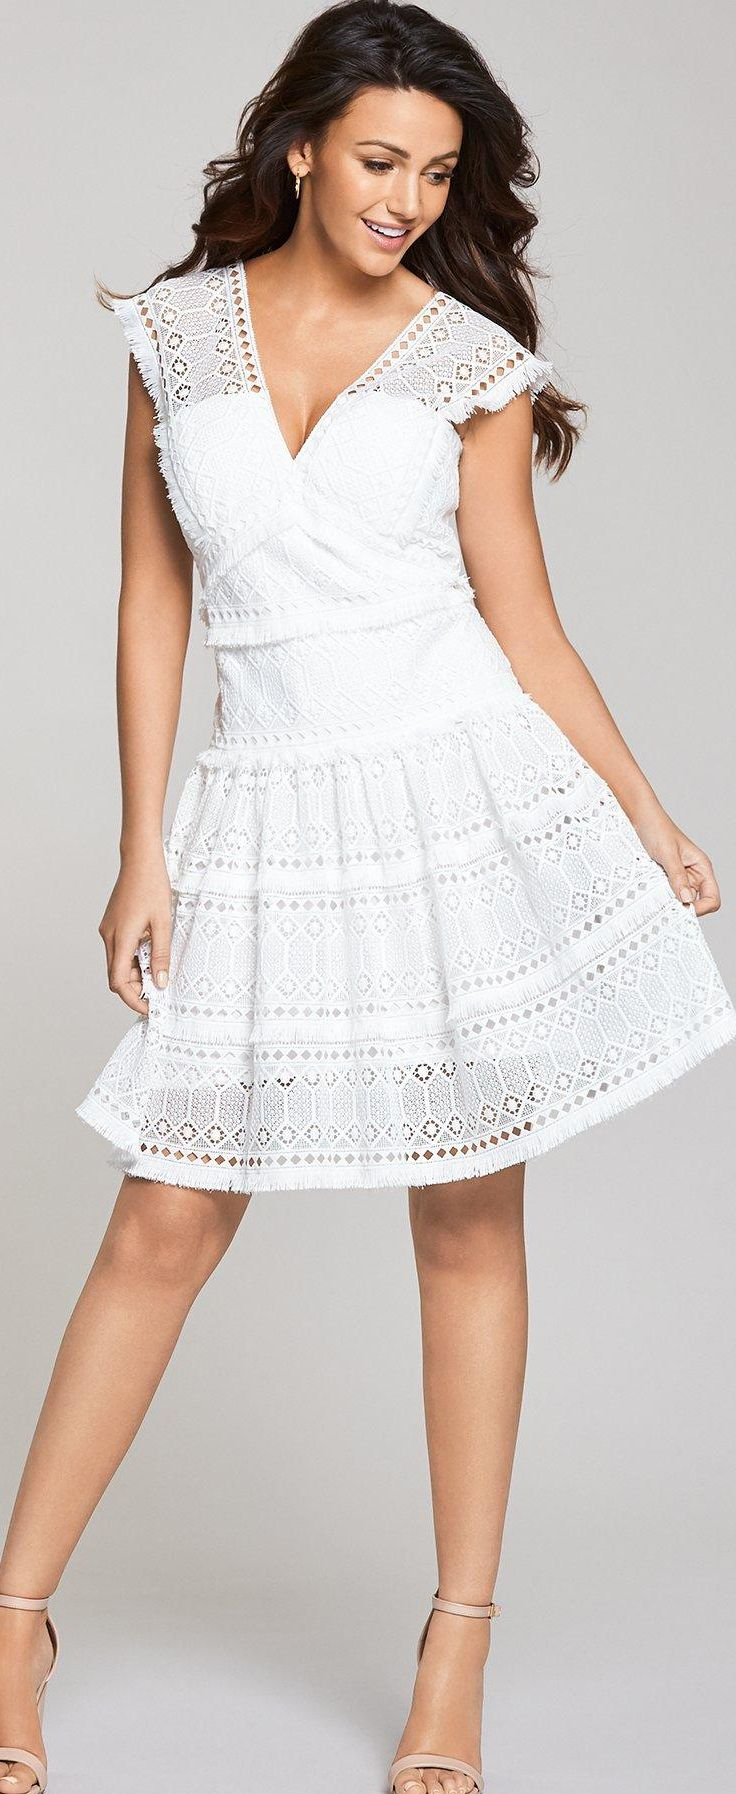 Lace dress cover up  Michelle Keegan Lace Dress  The perfect summer dress Michelle